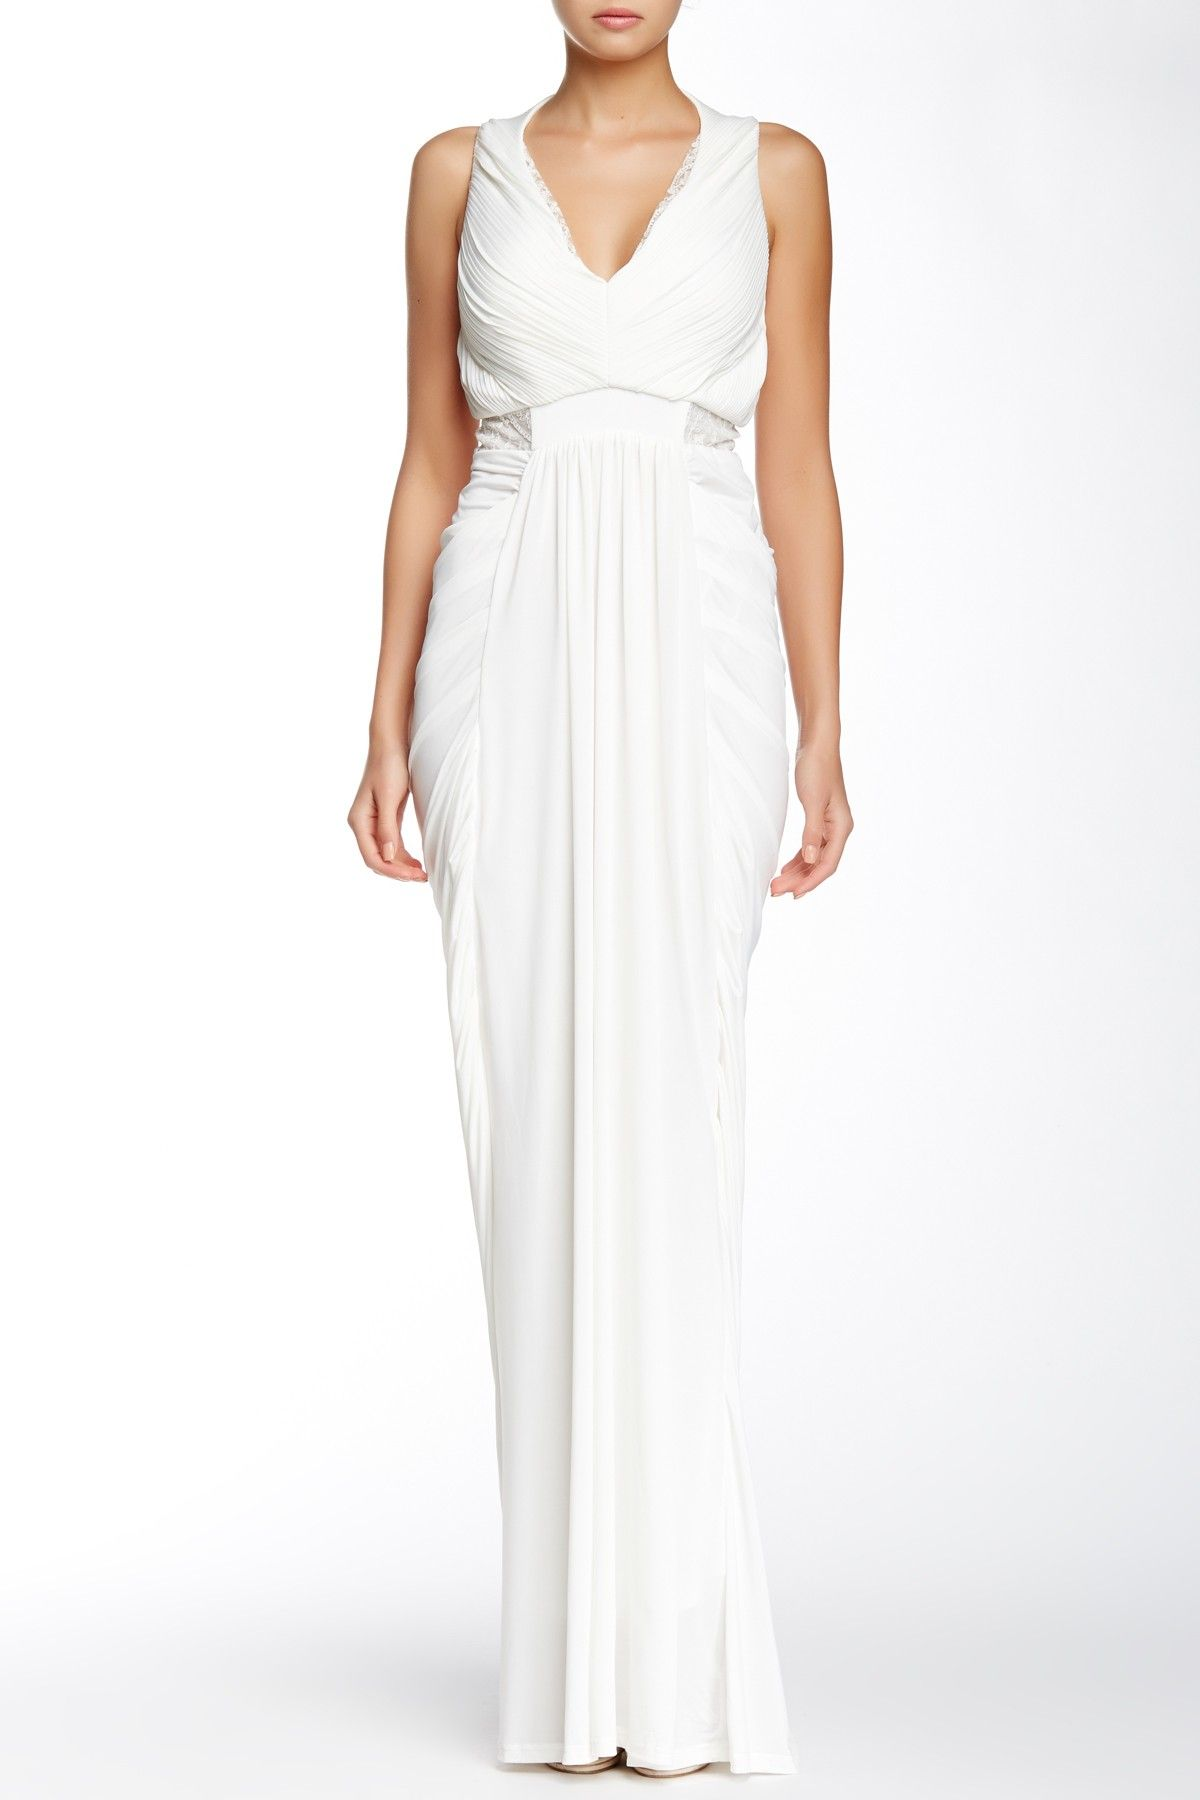 Gracia | Sleeveless Draped Evening Dress | Nordstrom, Ships and Events